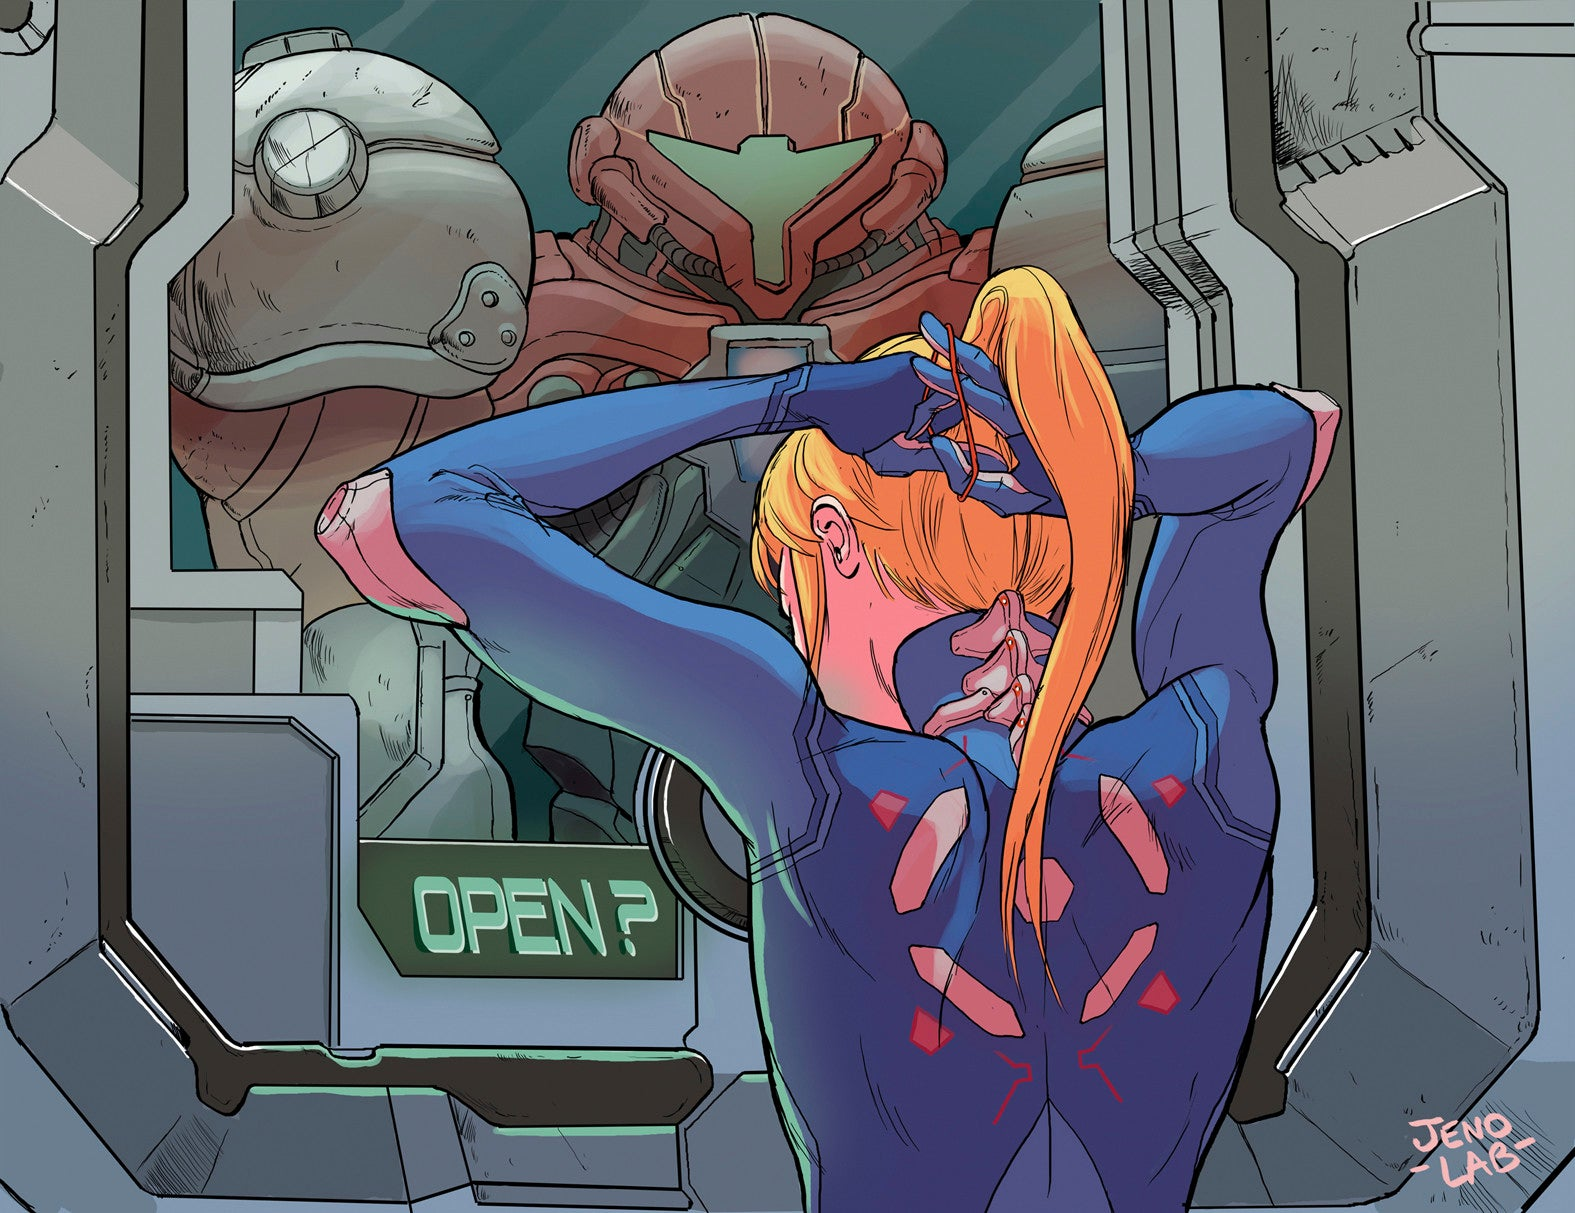 Just Another Day At The Office For Samus Aran